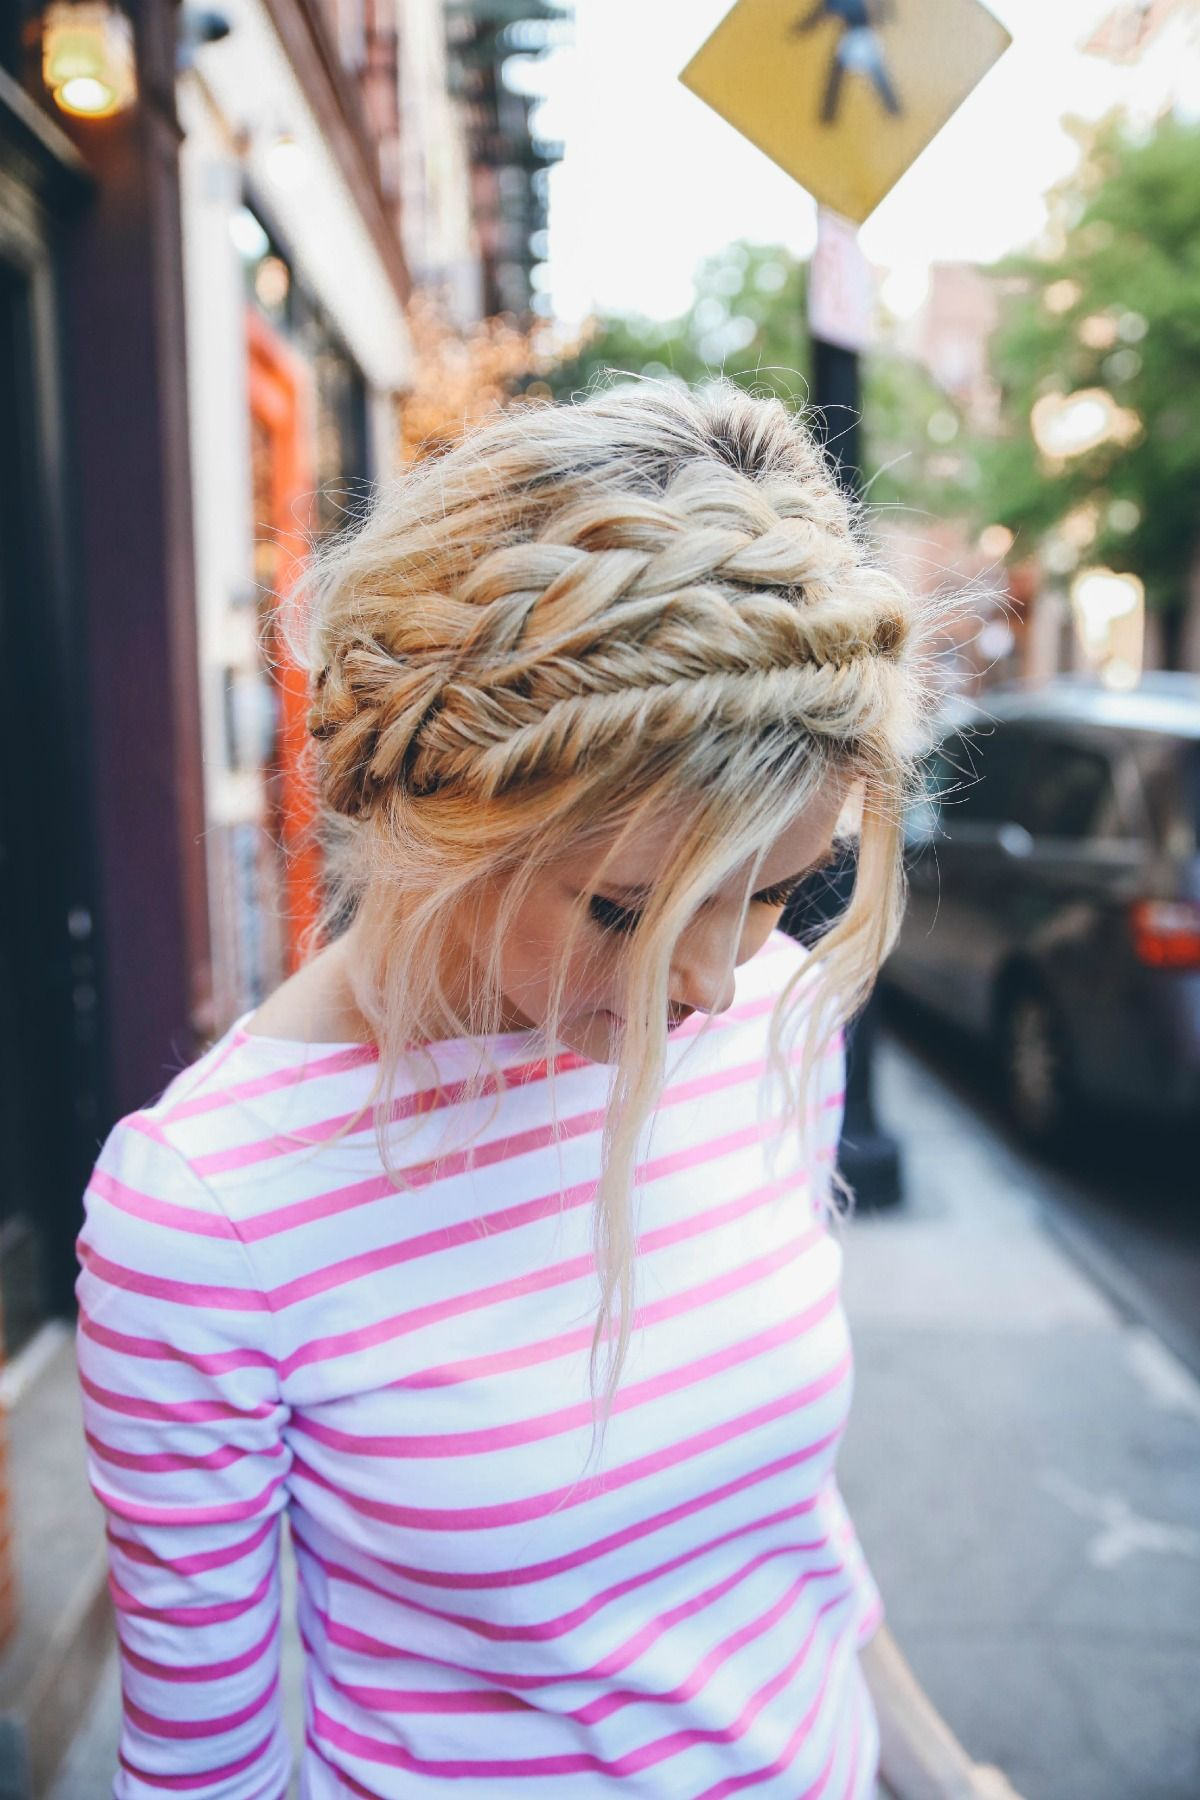 Milkmaid Braid With One Fishtail And One Normal Braid Hair - Diy hairstyle knotted milkmaid braid